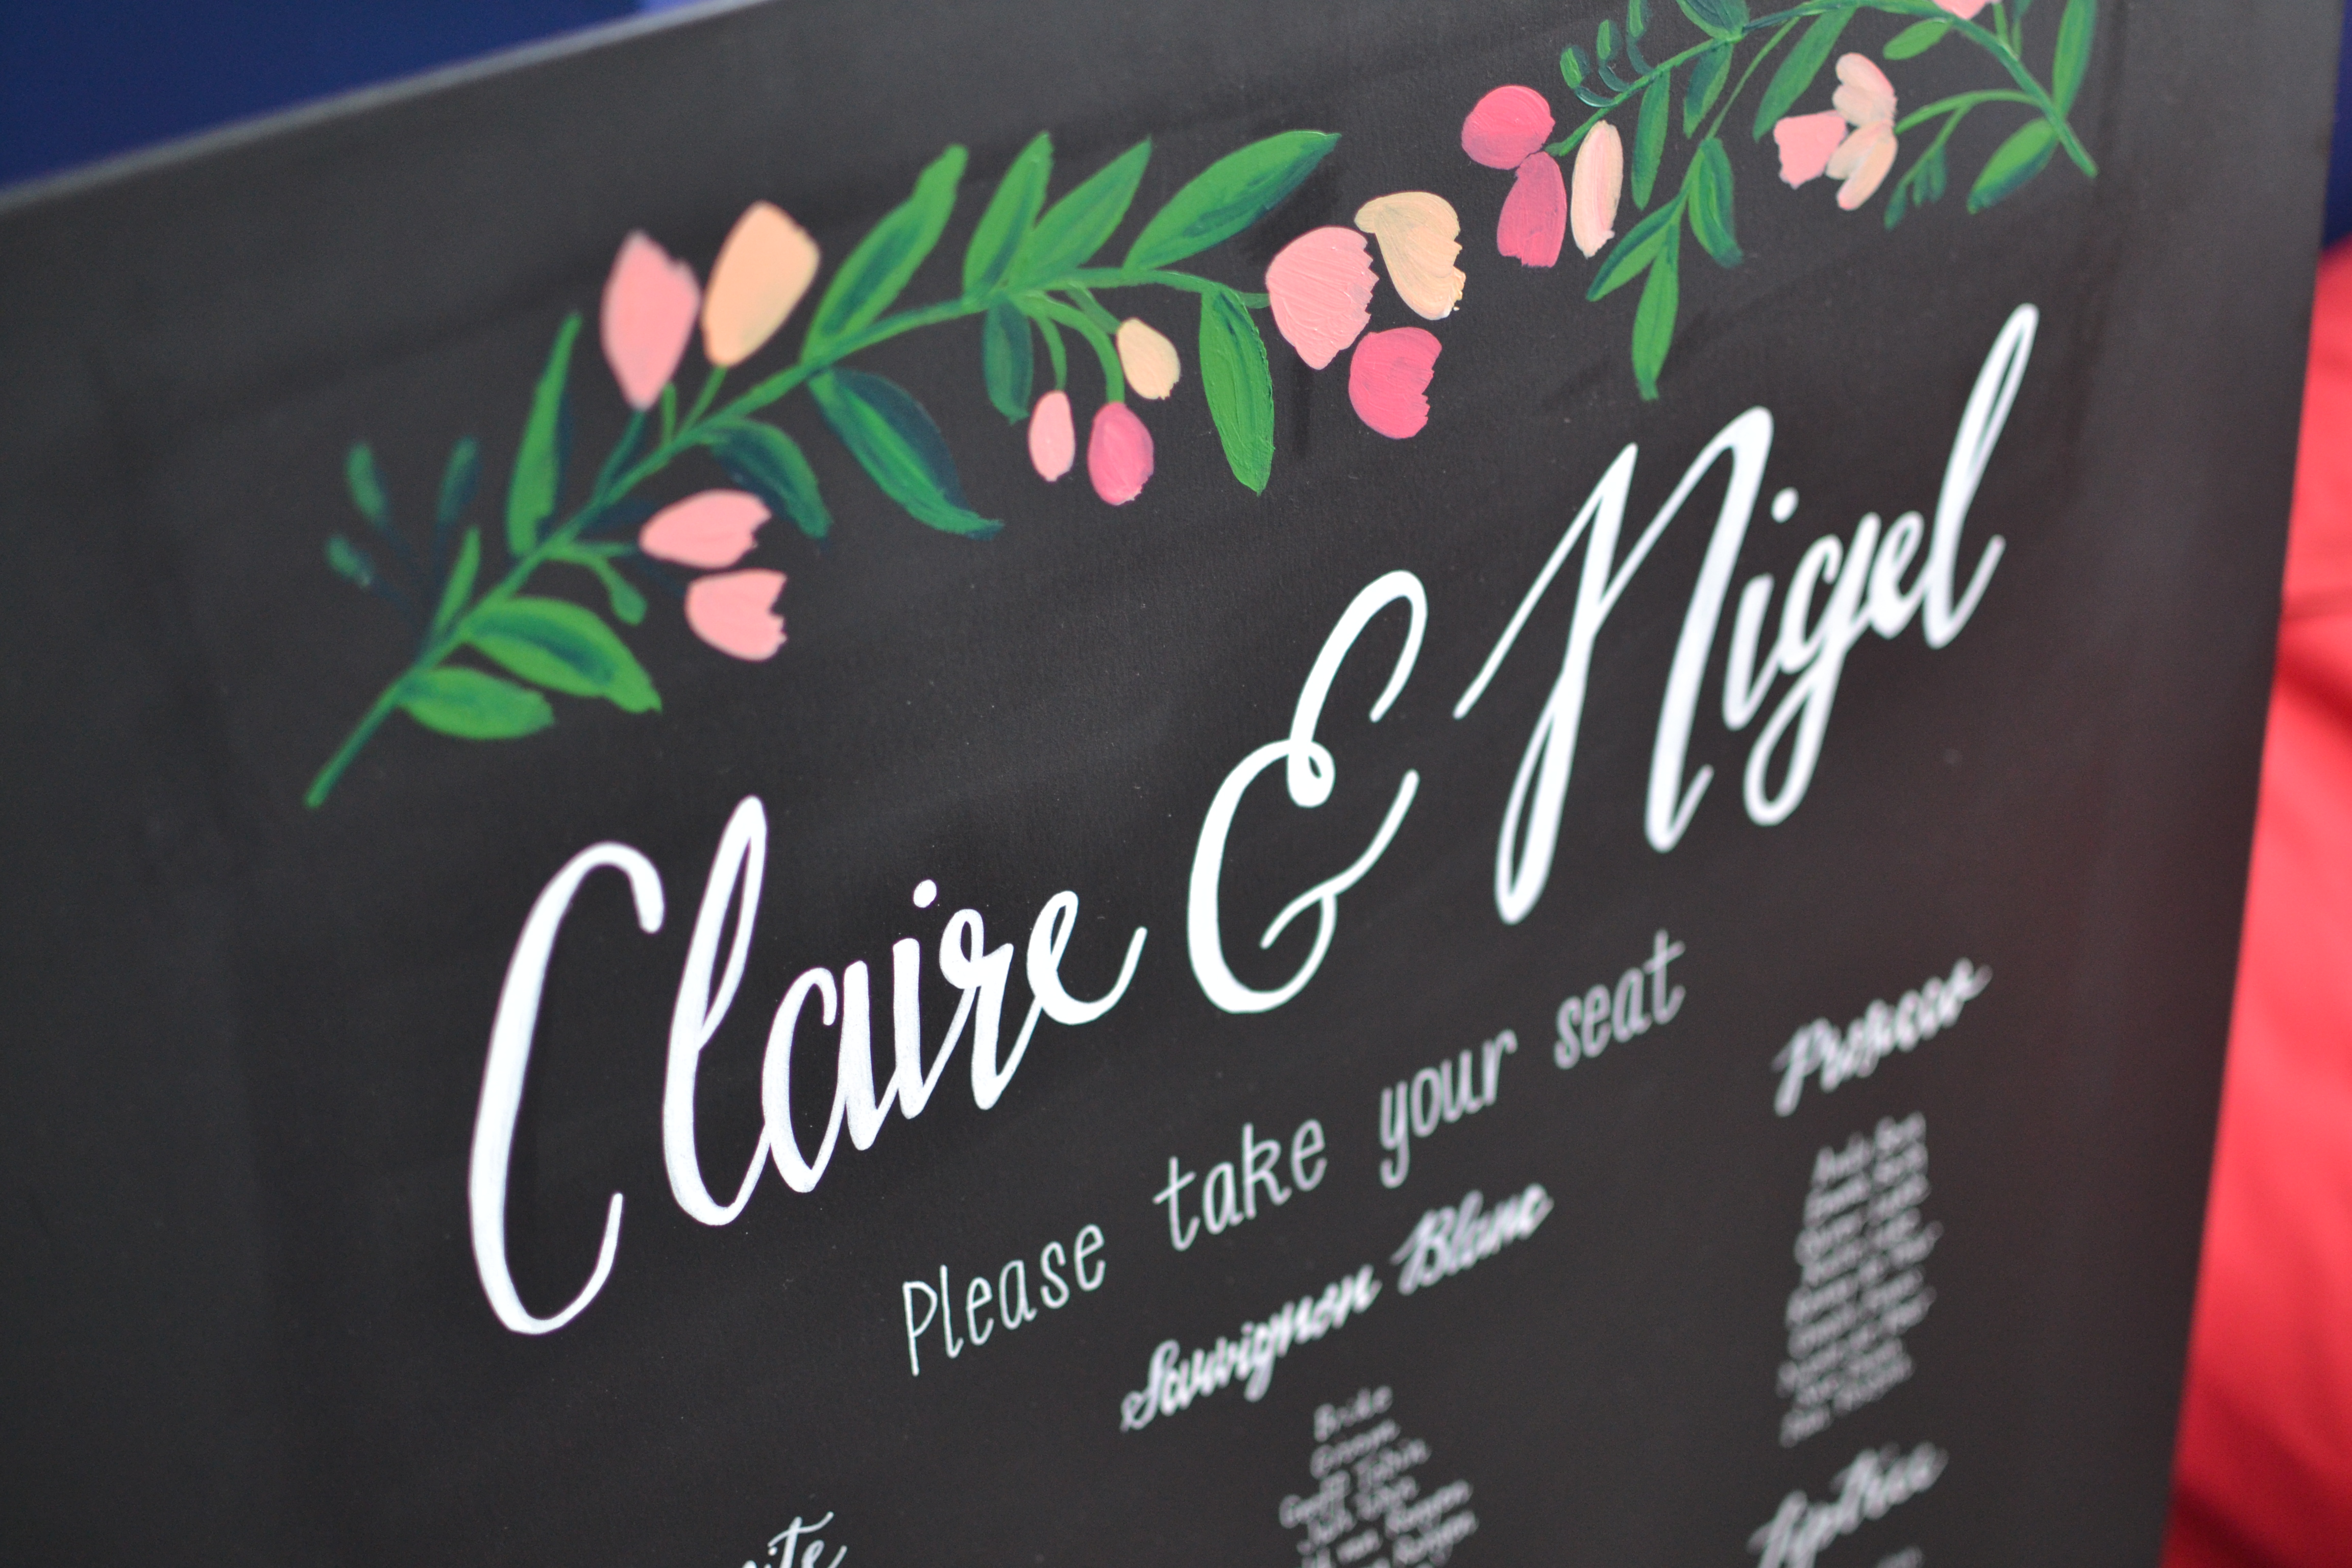 Claire & Nigel 2016 - Wedding Chalkboards - DreamalittleHANDMADE (30)